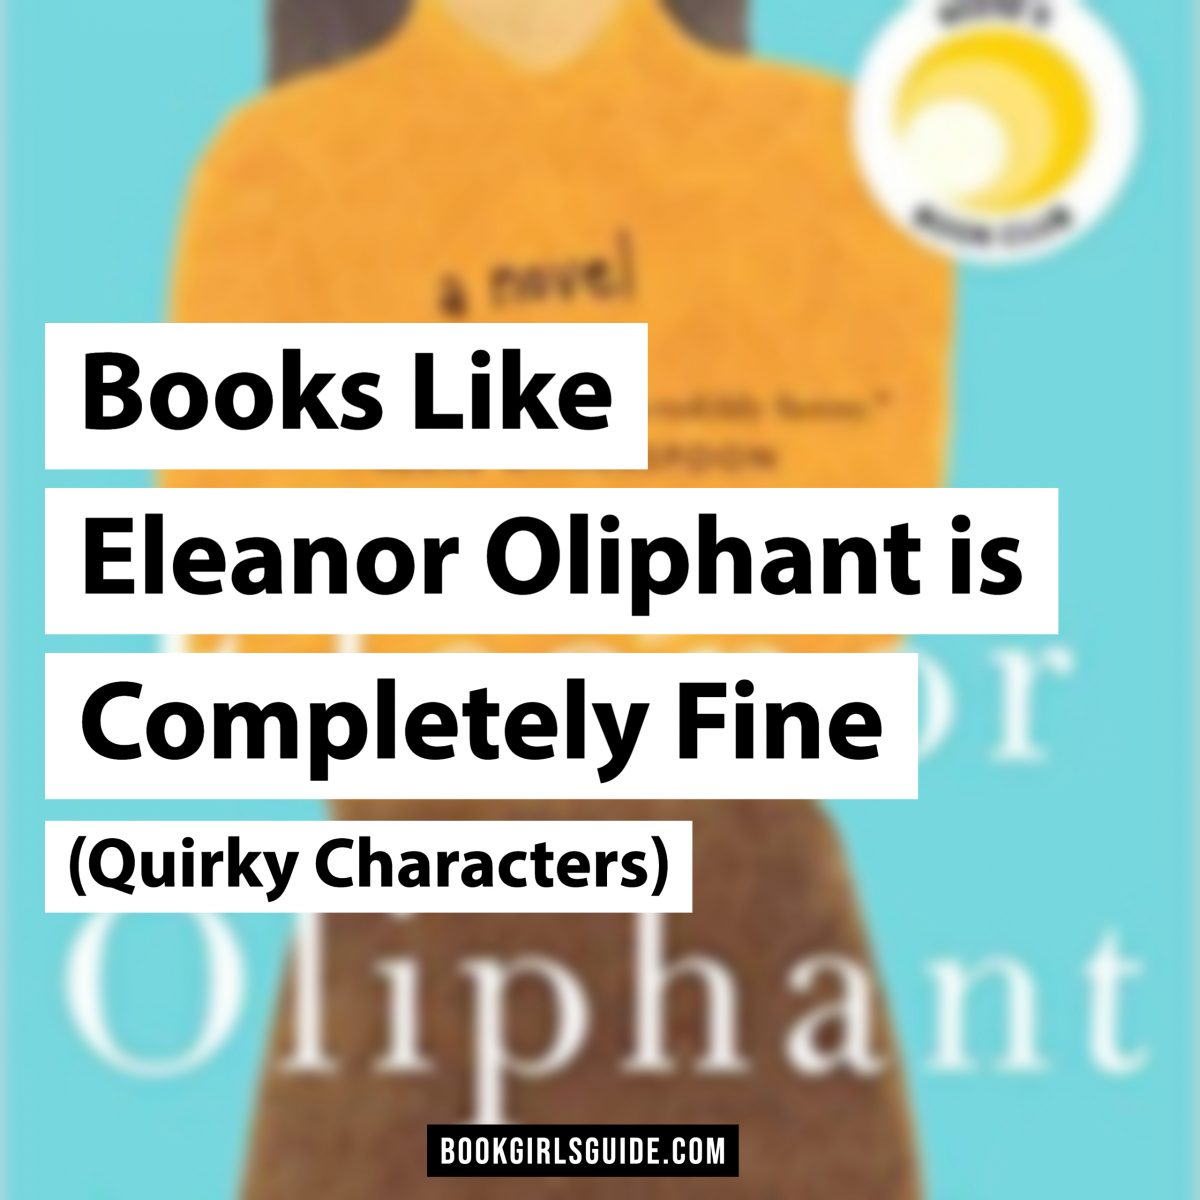 Books Like Eleanor Oliphant is Completely Fine